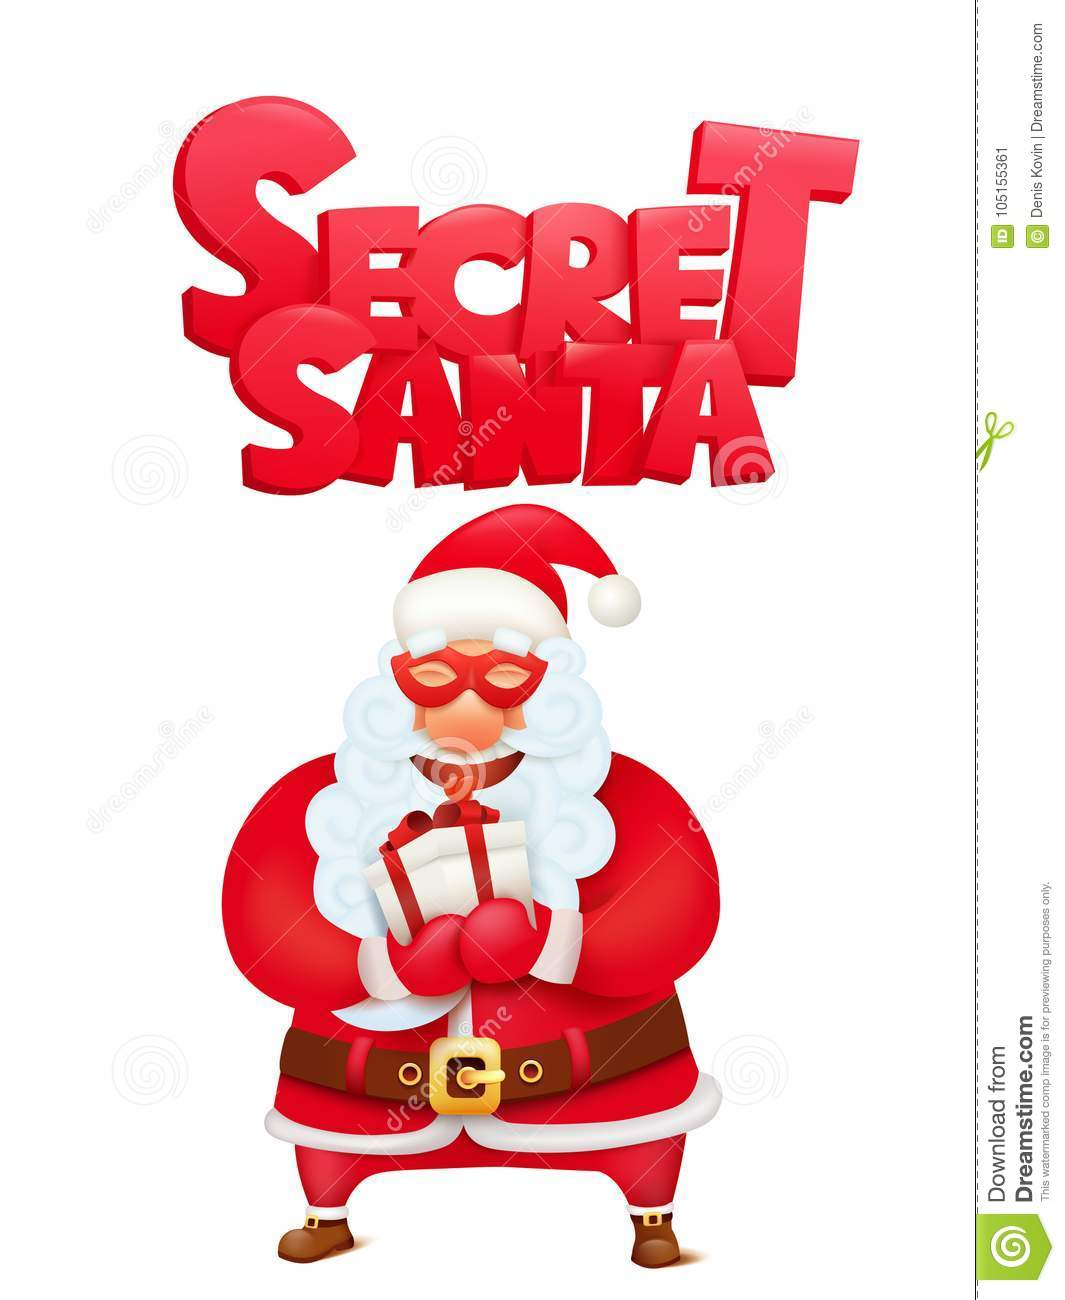 Secret Santa Claus Invitation Concept Card Template Stock